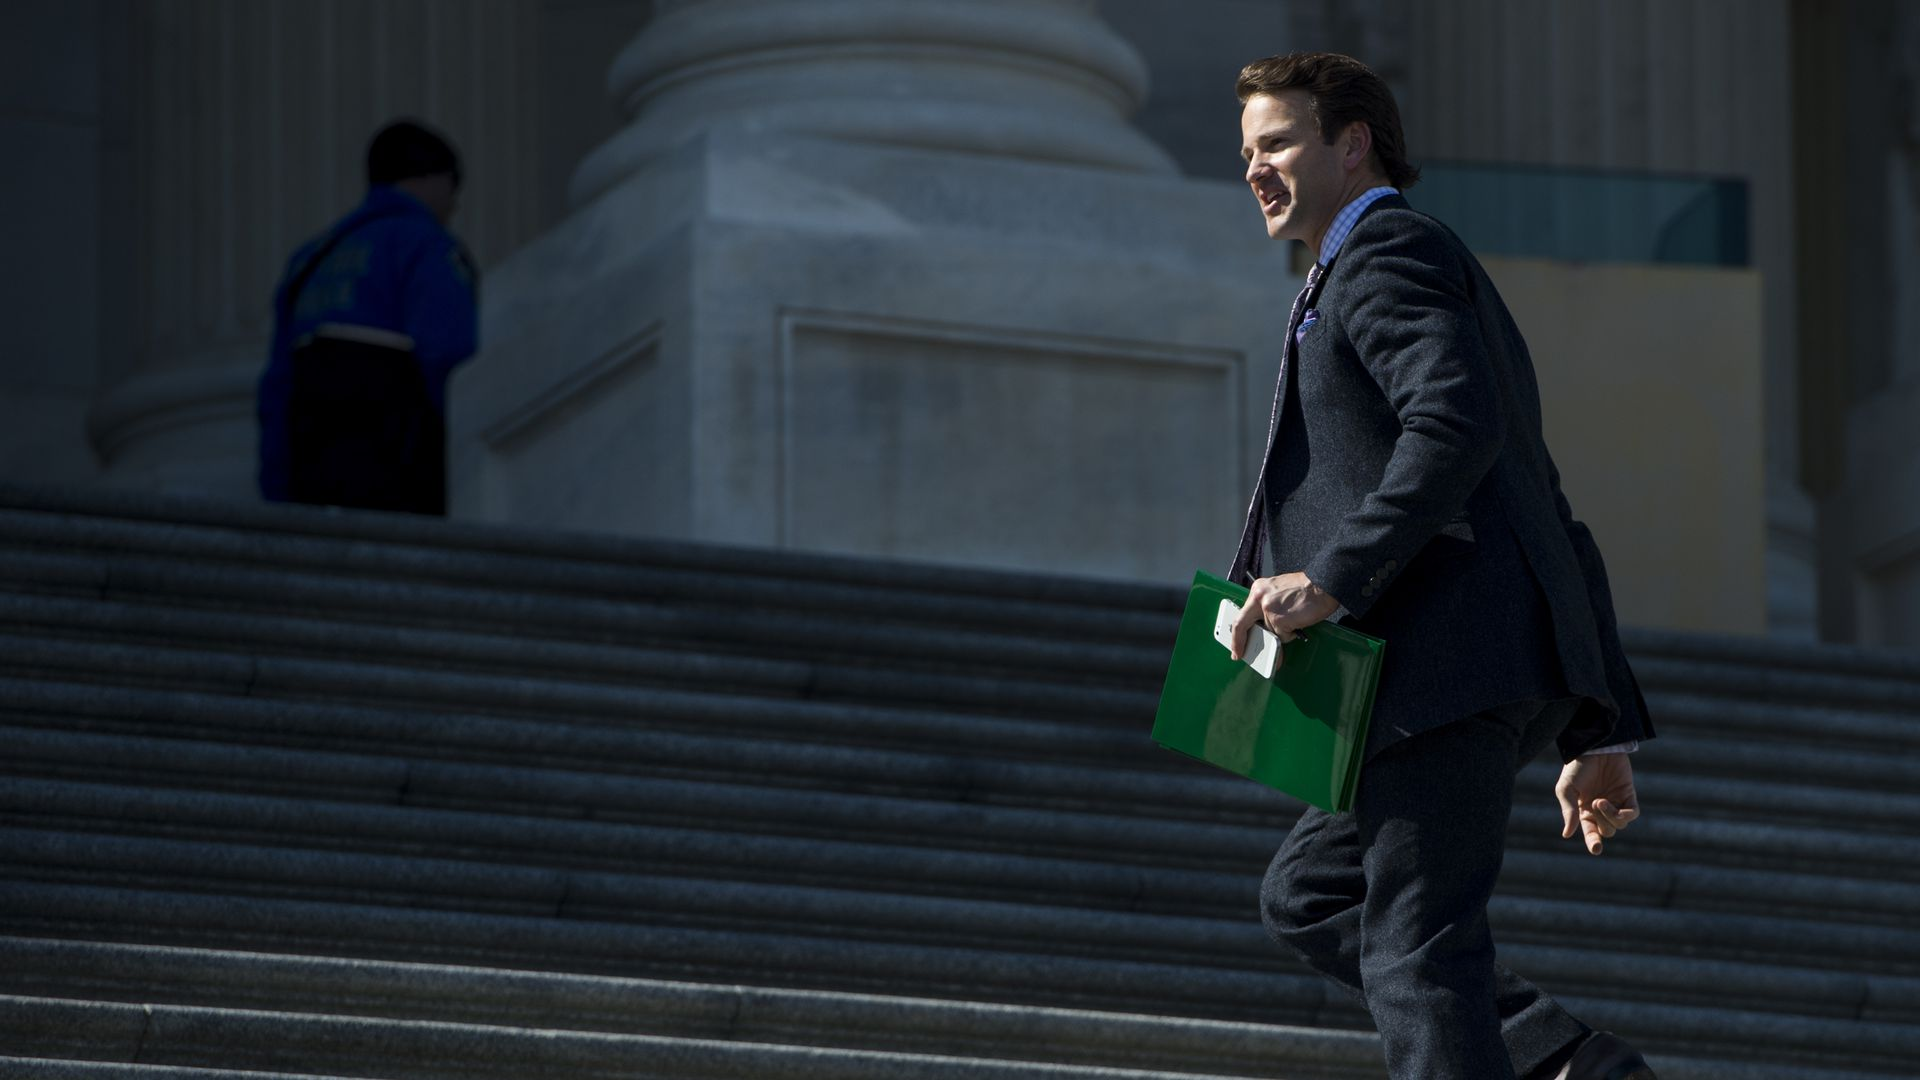 Former congressman Aaron Schock walks up the Capitol steps holding a green folder.